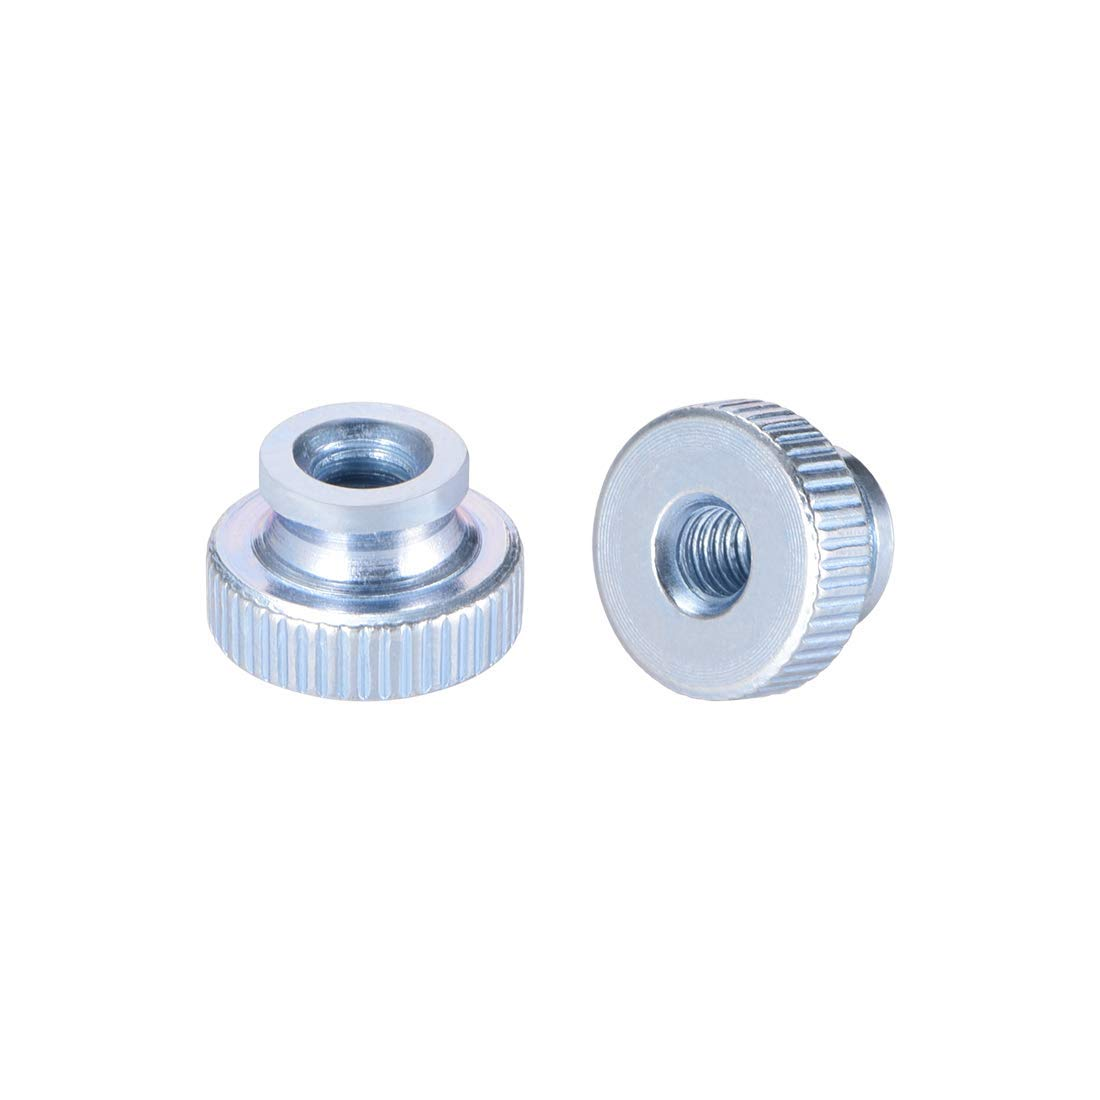 Round M4 knobs with Collar Knurled knurled Nuts DealMux Pack of 20 zinc Coating